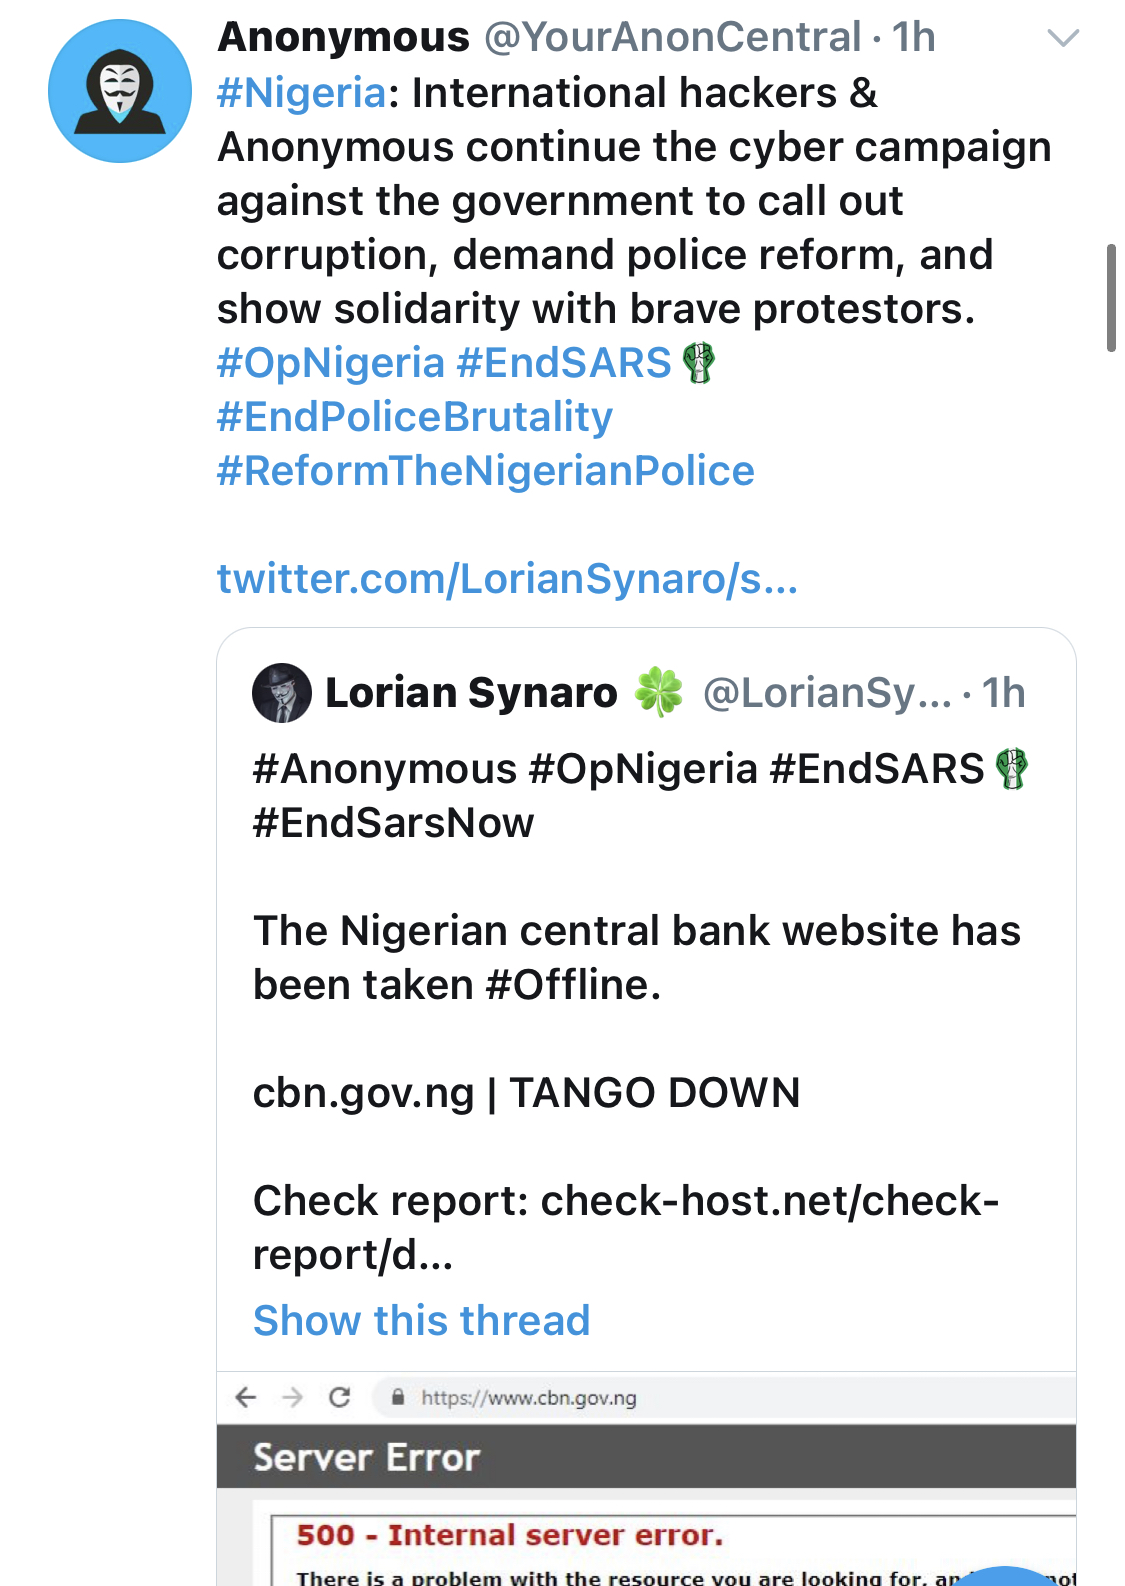 #EndSARS: CBN Website Hacked By Anonymous